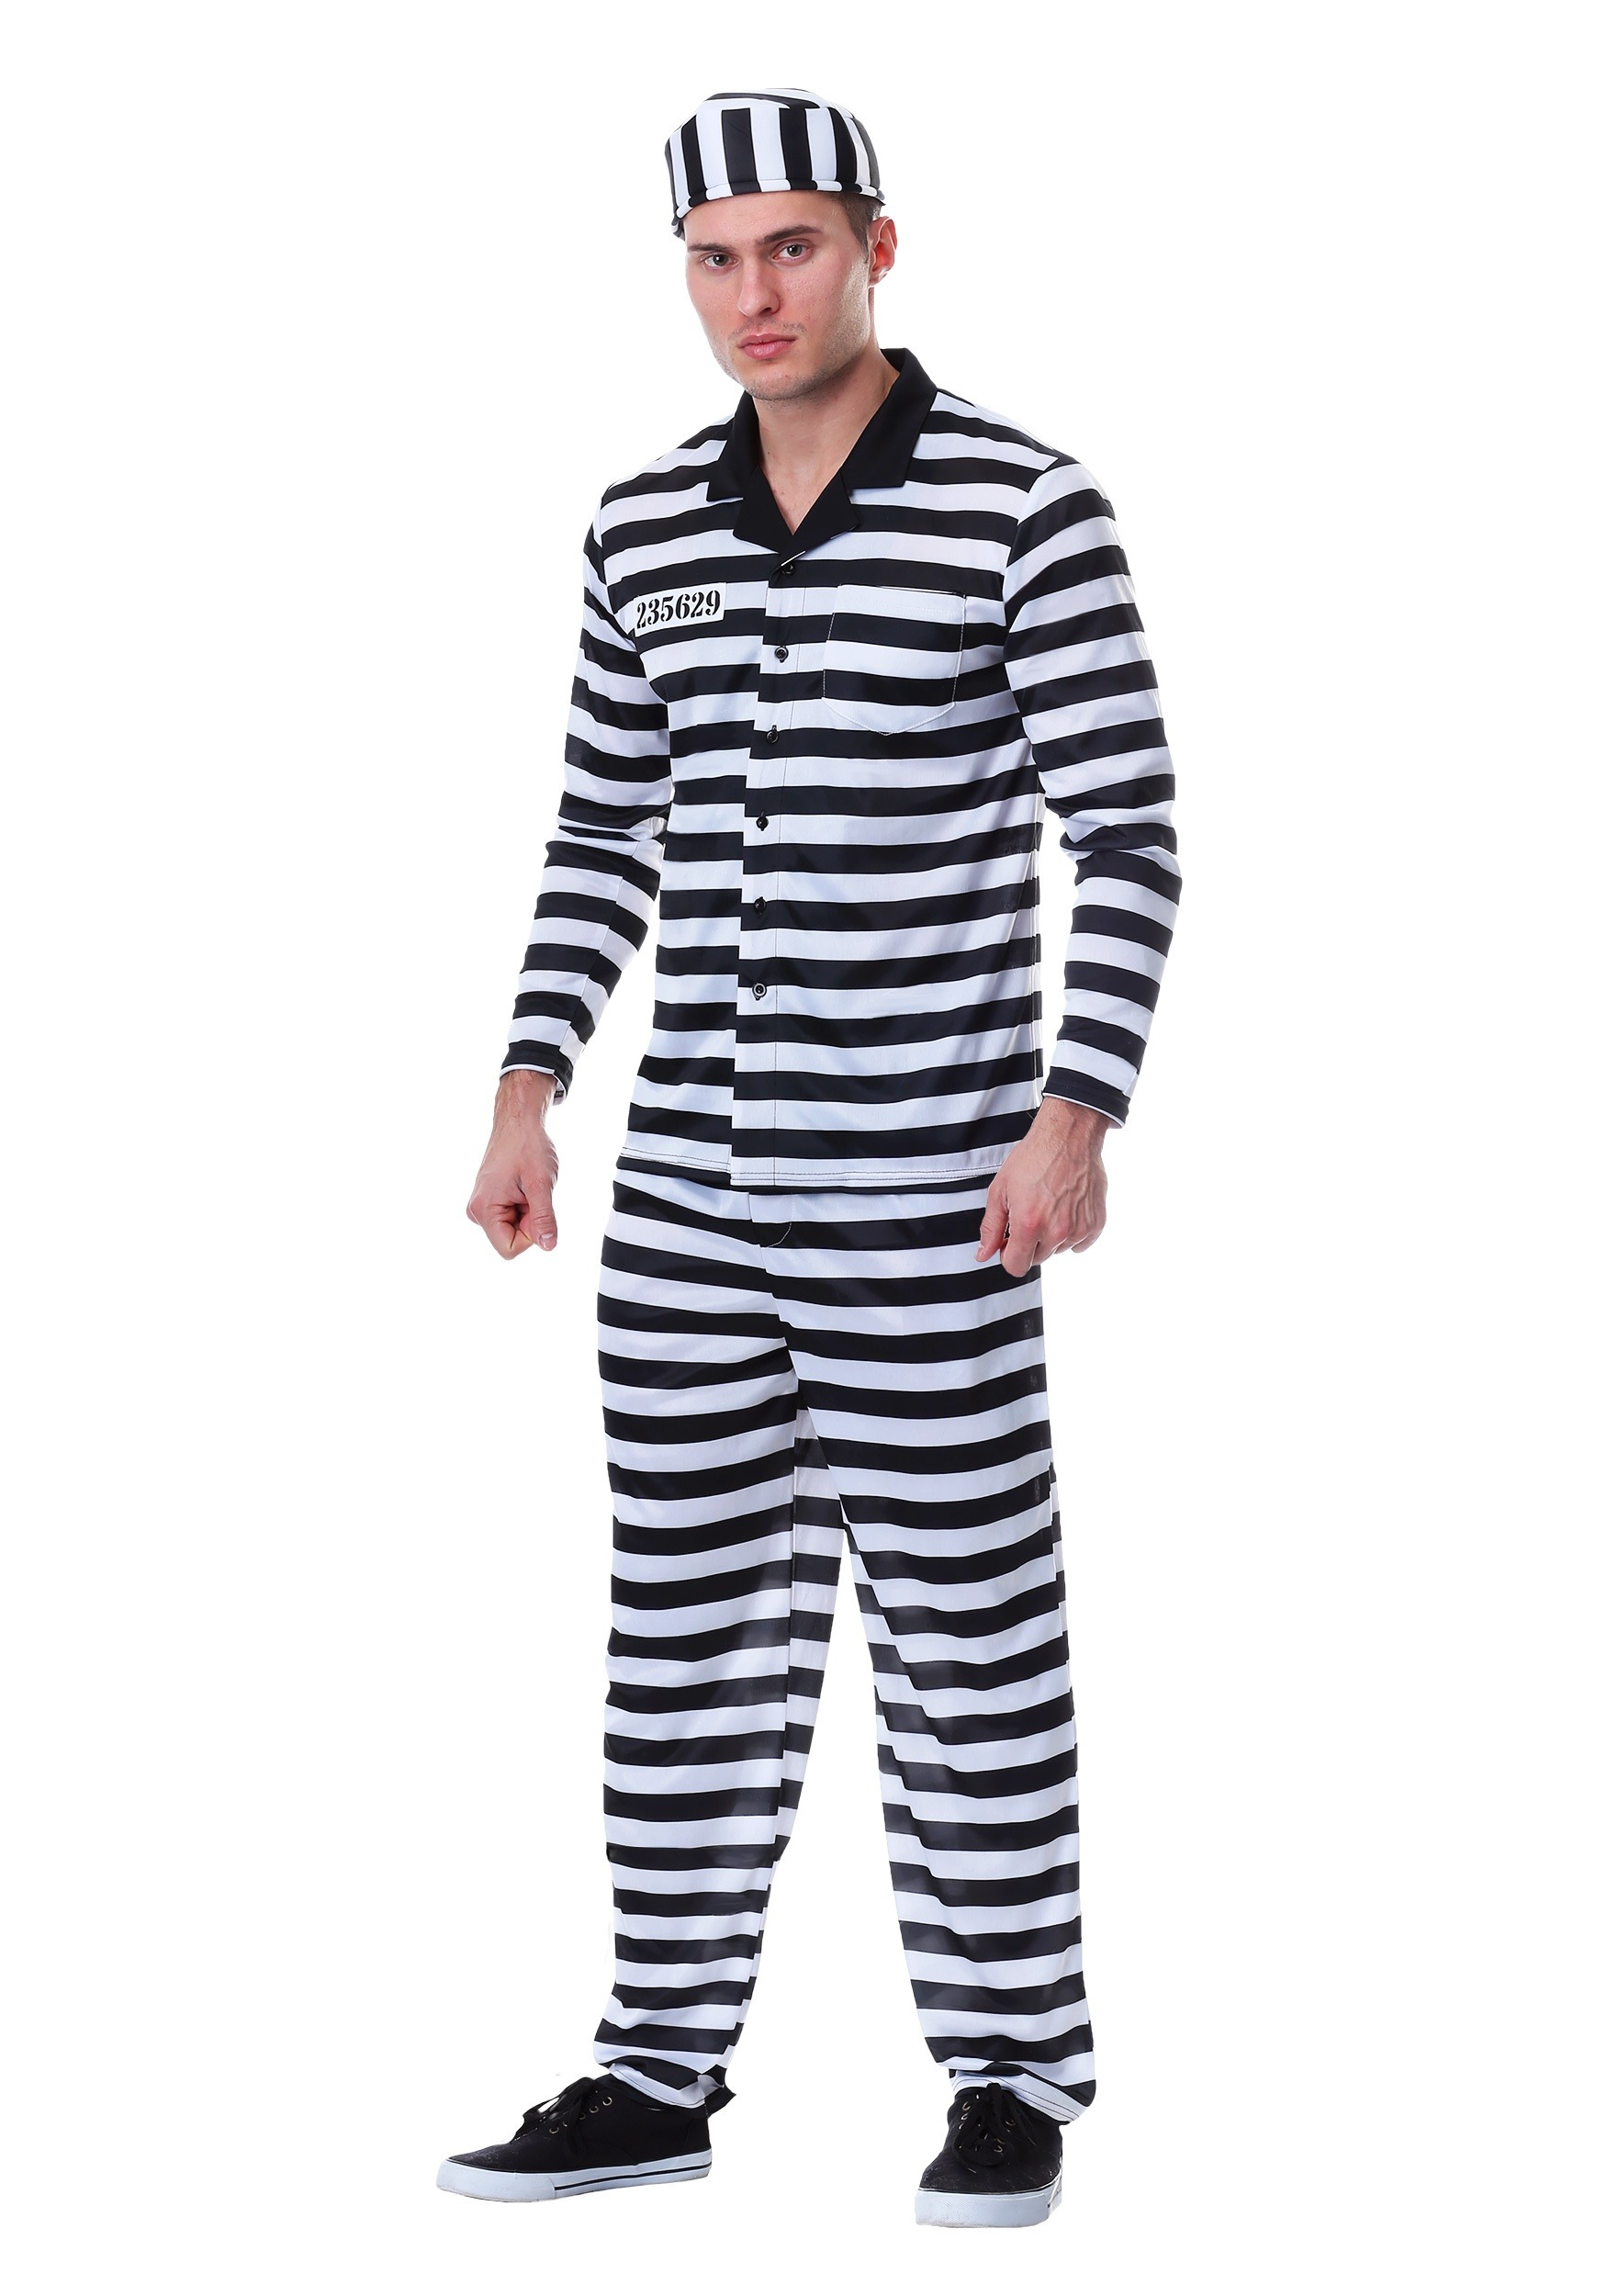 Deluxe Button Down Jailbird Costume for Men